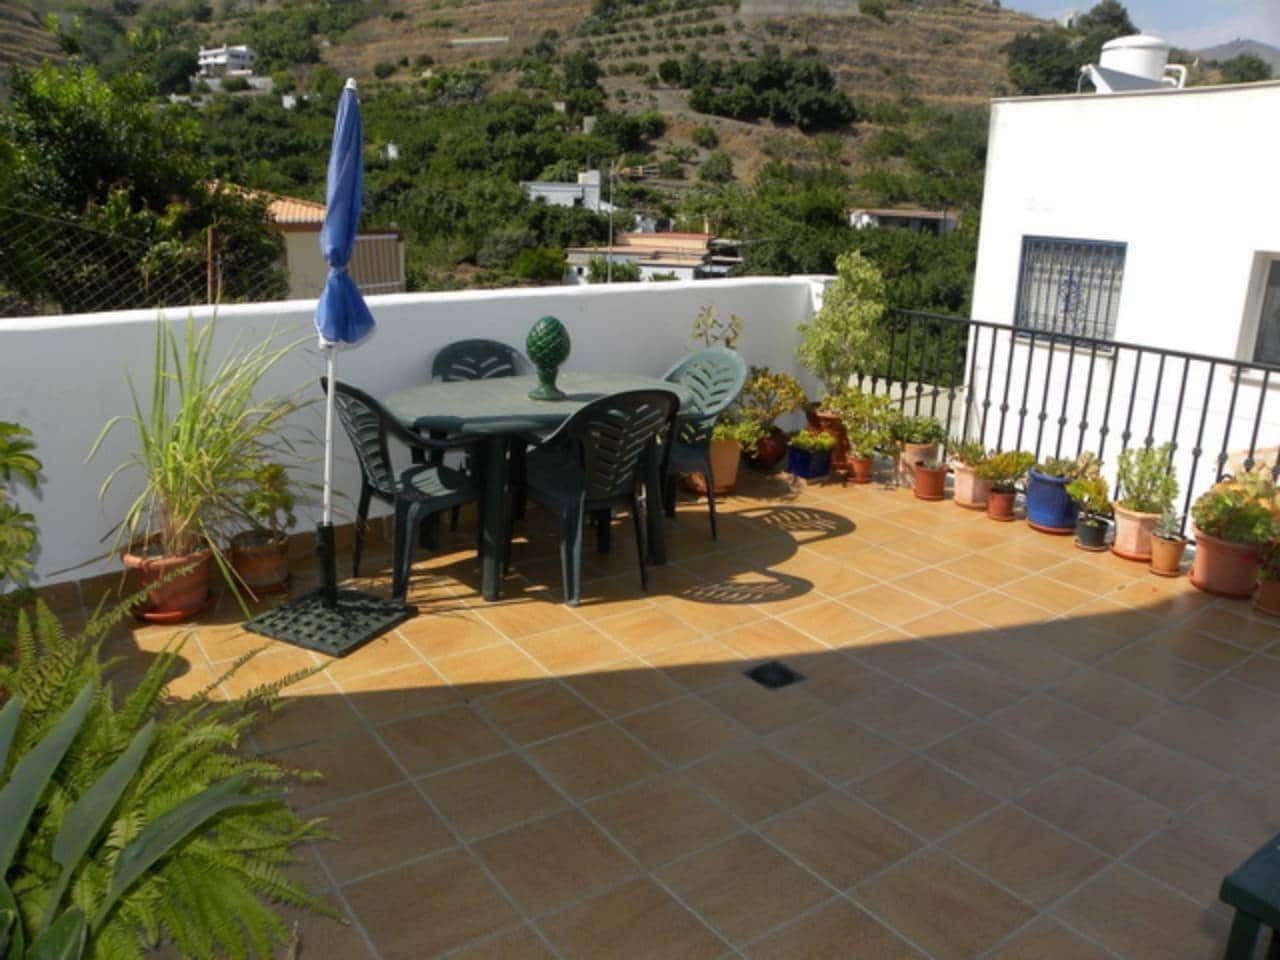 4 bedroom Terraced Villa for sale in Taramay with garage - € 240,000 (Ref: 4604620)